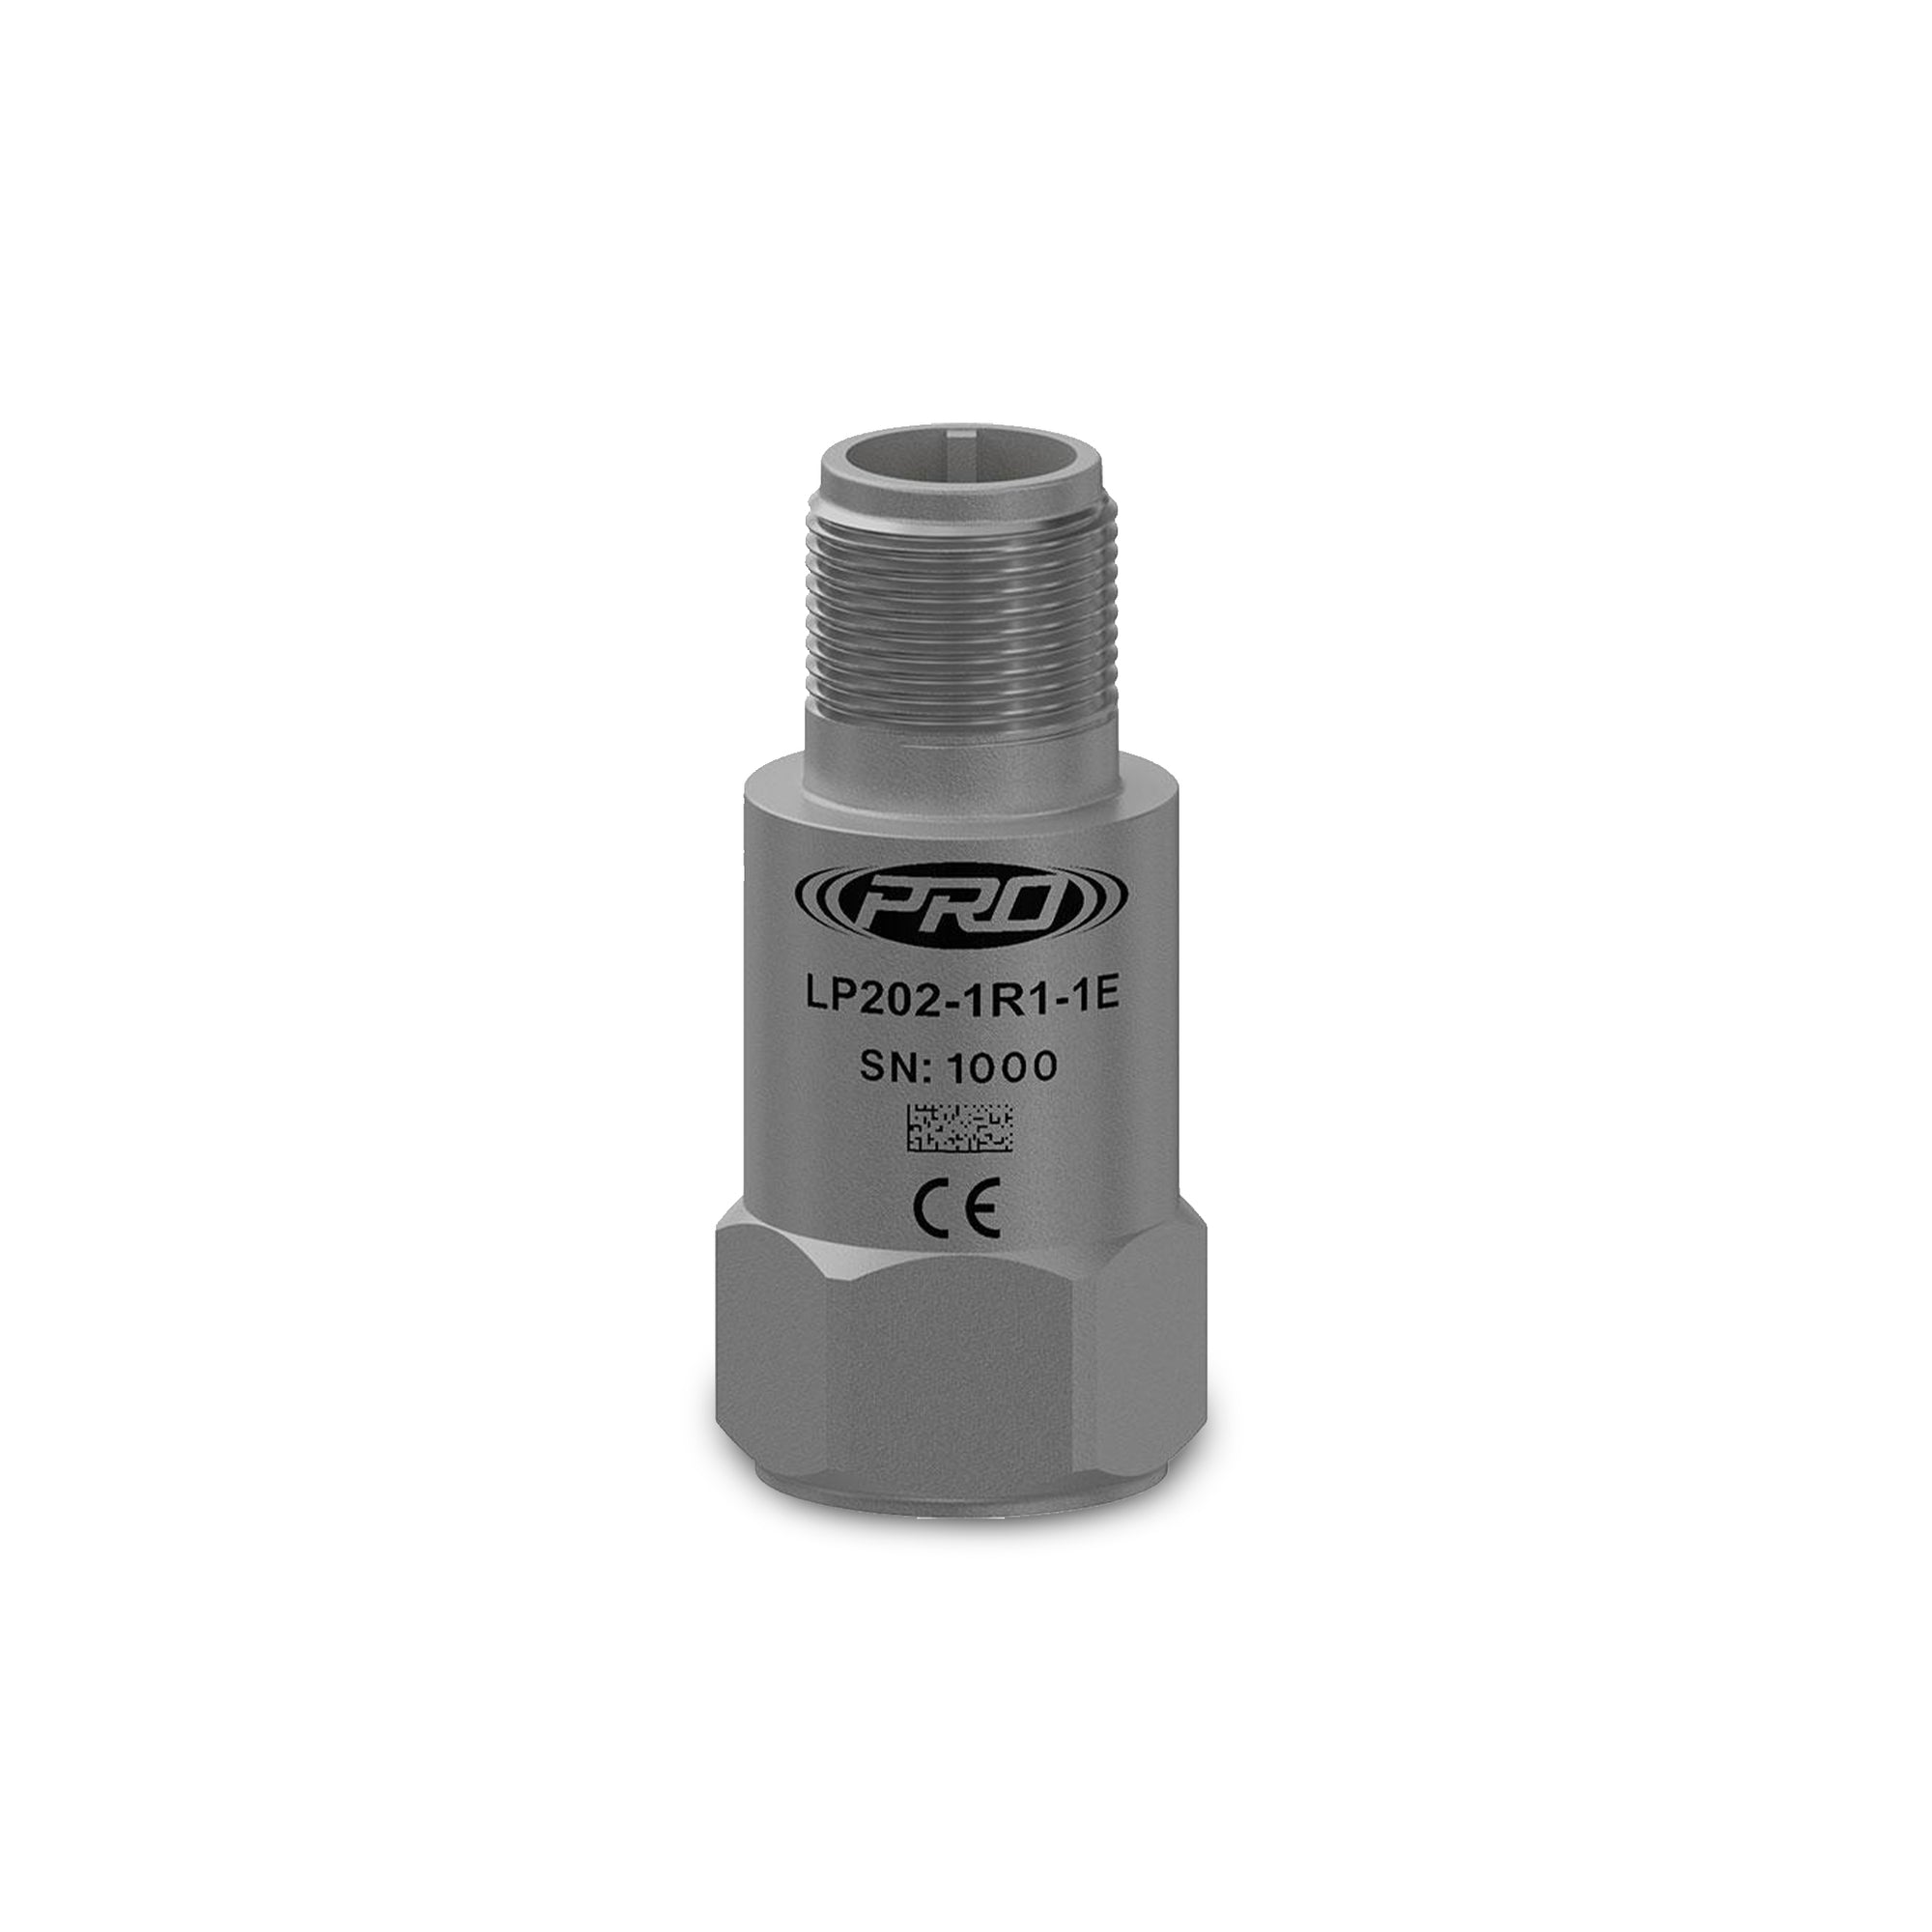 M/LP202-1R1-1E 0-25.4mm/s FS 4-20mA vibration transmitter